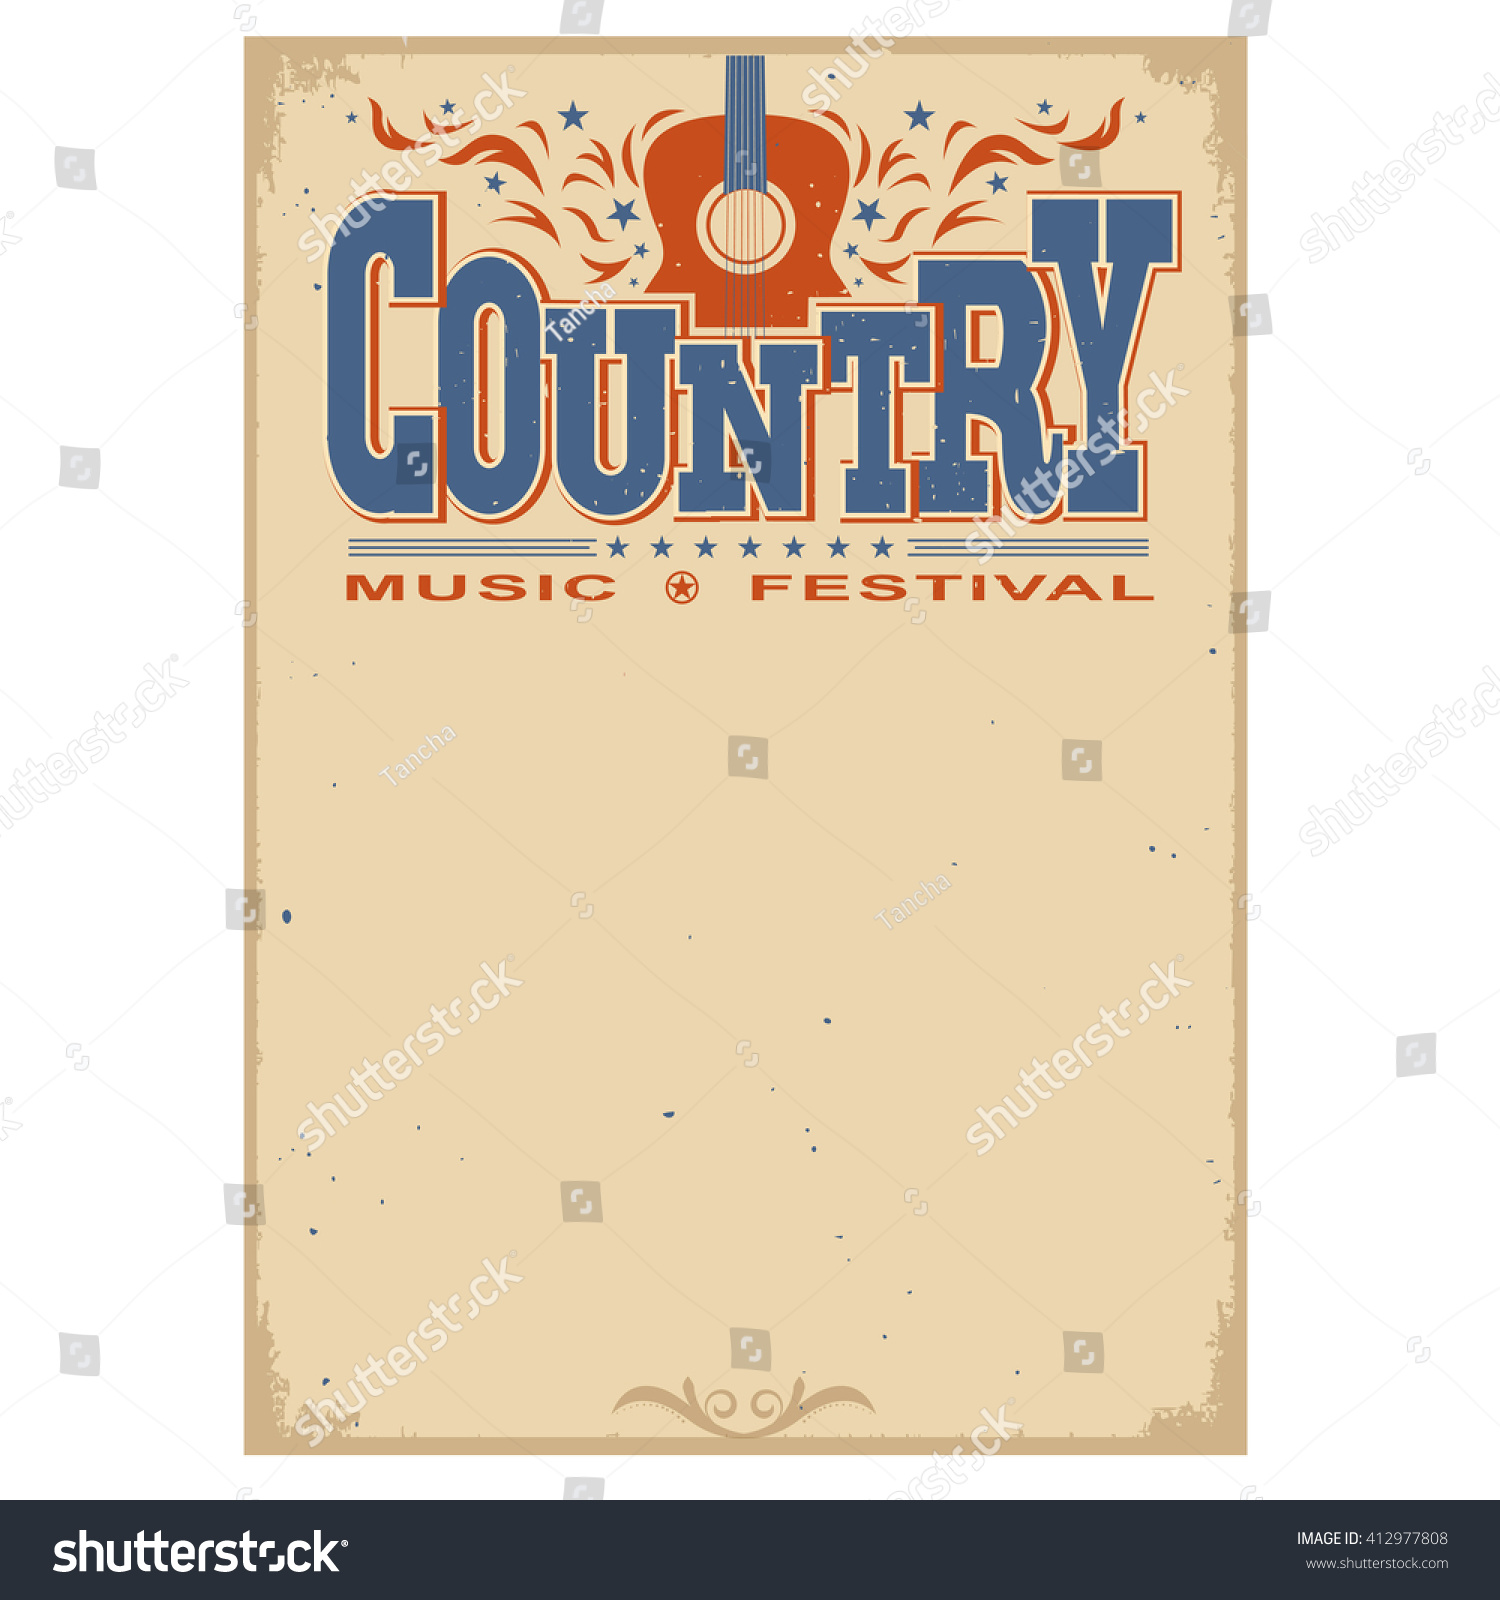 Country Music Wallpaper: Country Music Festival Poster On Old Stock Vector